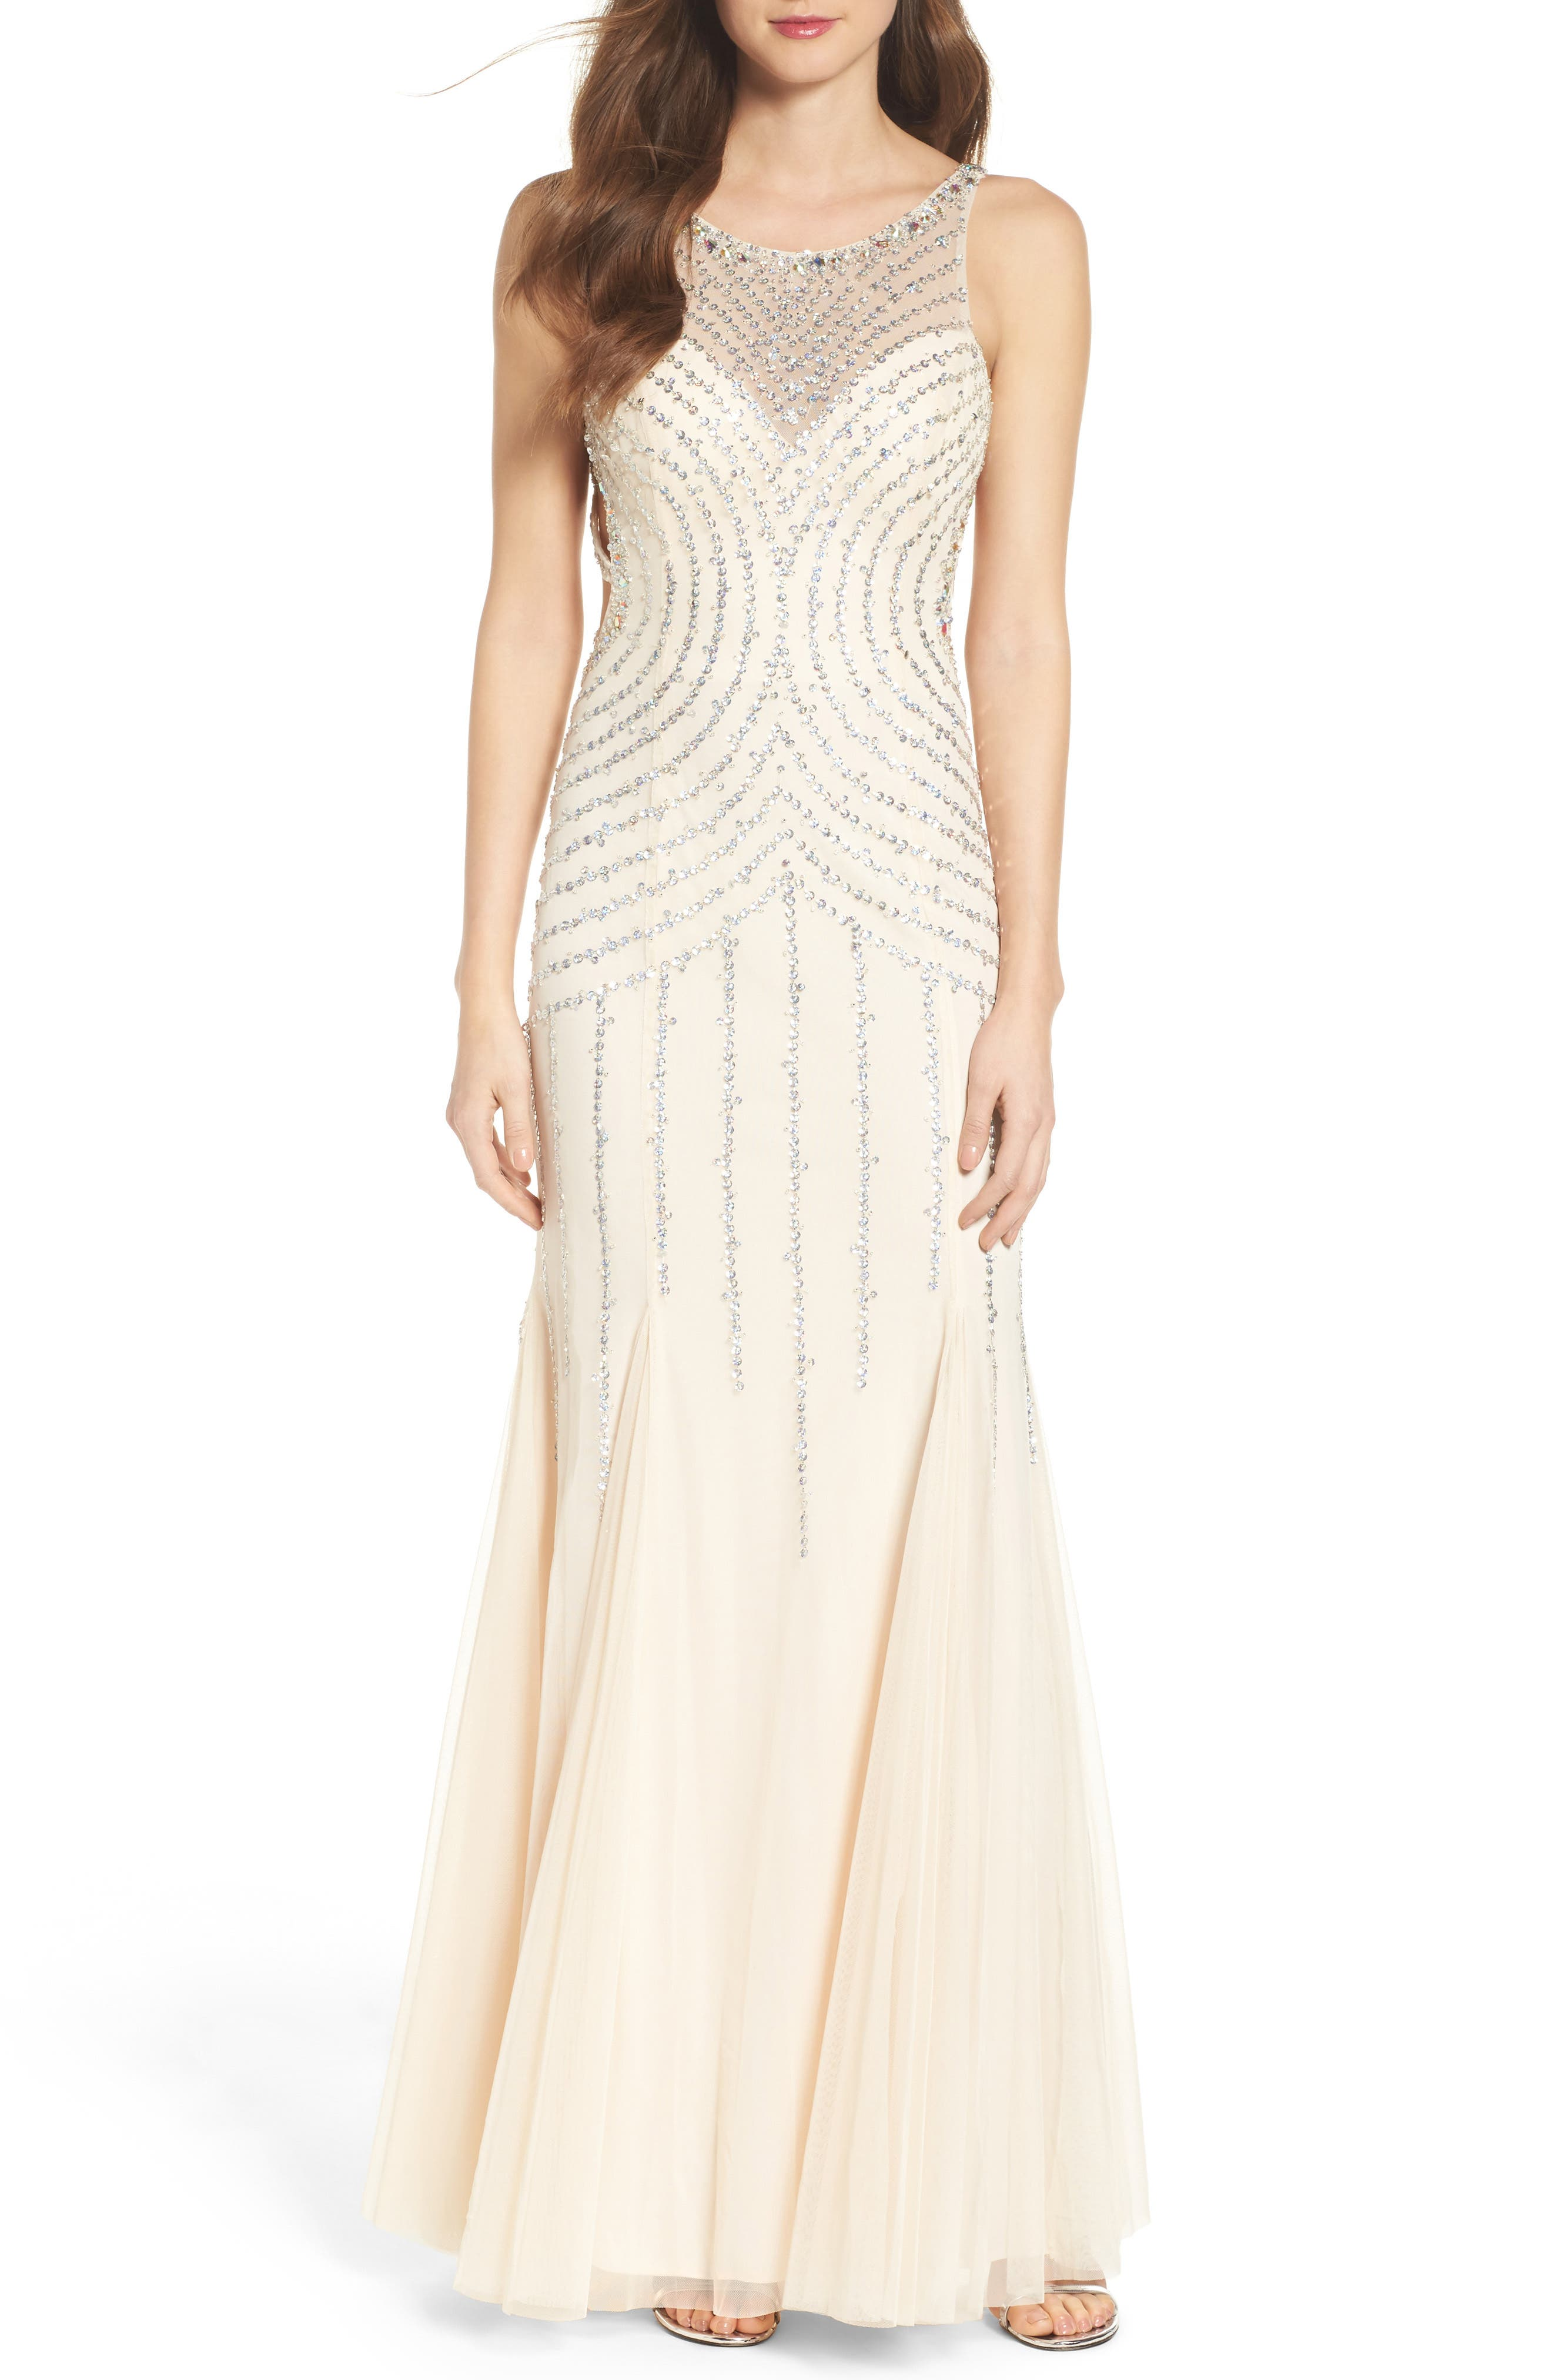 Alternate Image 1 Selected - Sean Collection Embellished Mesh Mermaid Gown